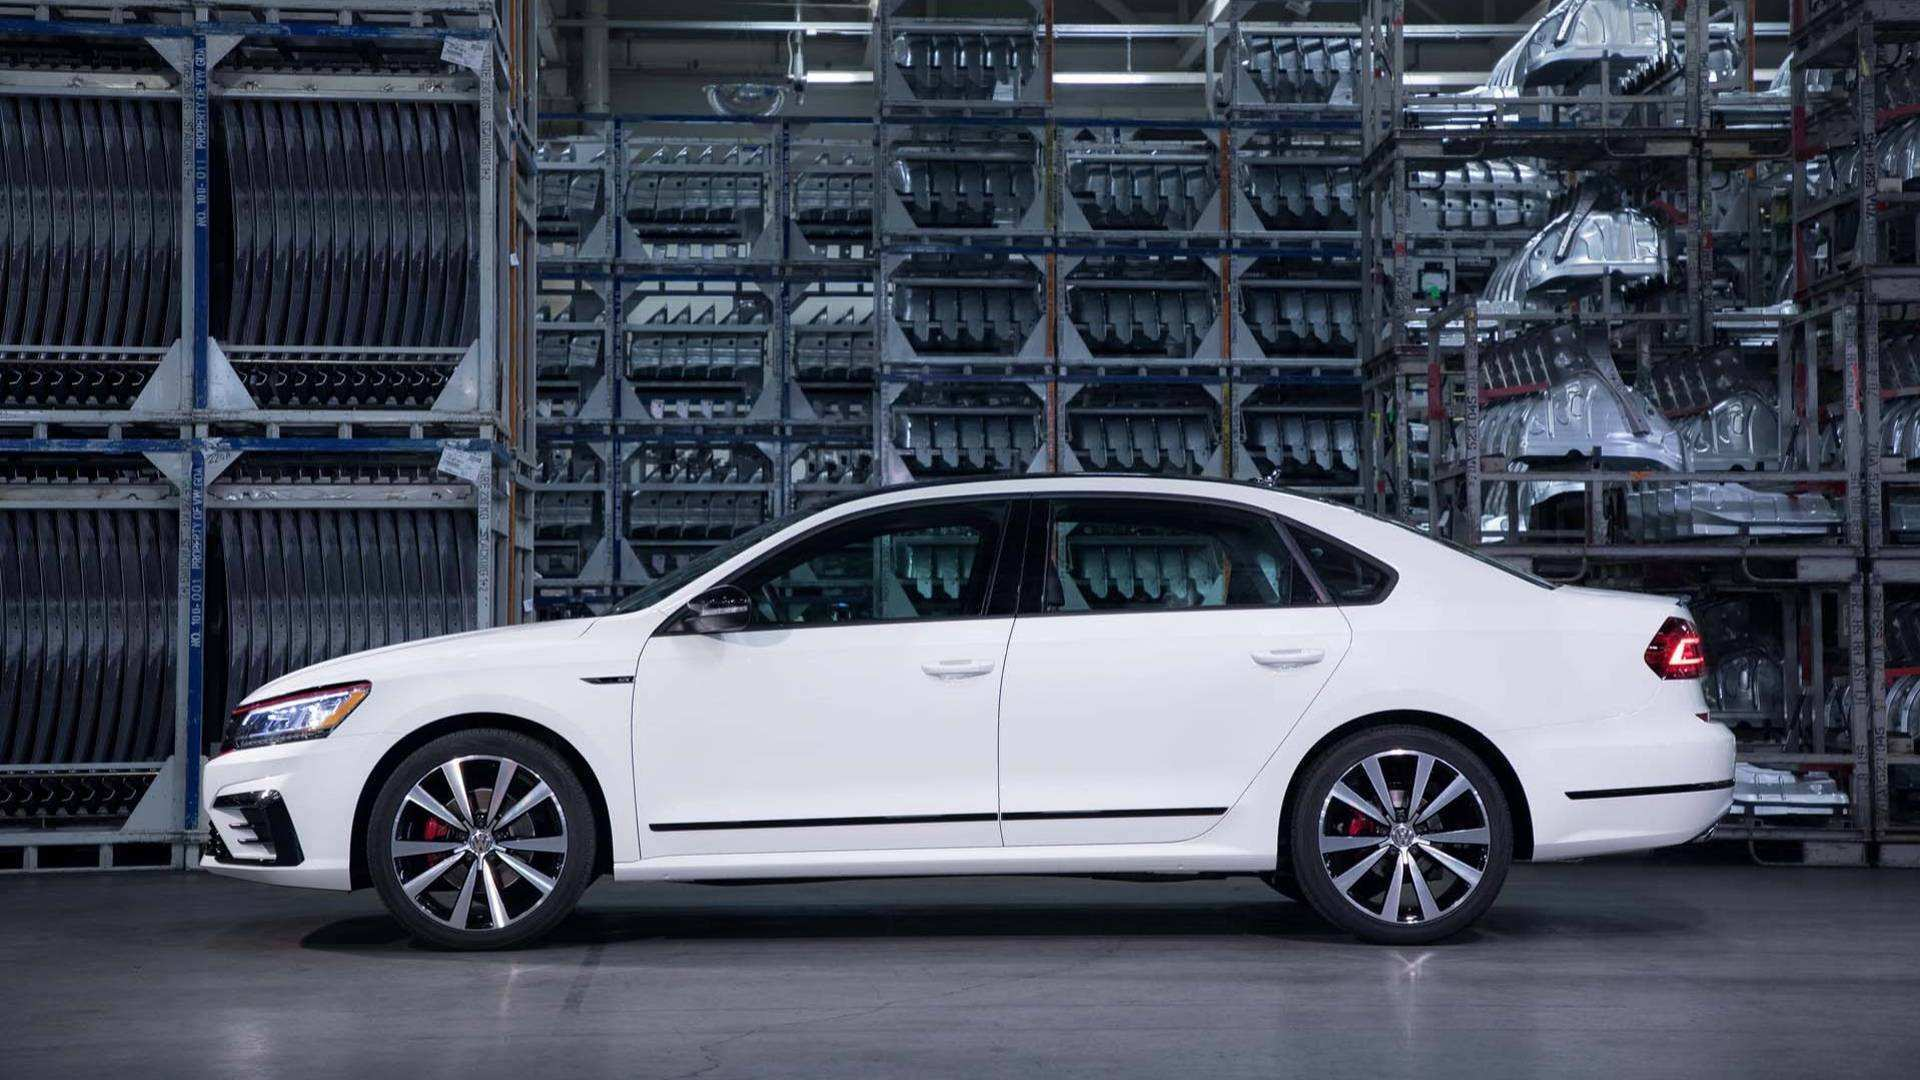 57 Great Vw Passat Gt 2019 Price by Vw Passat Gt 2019